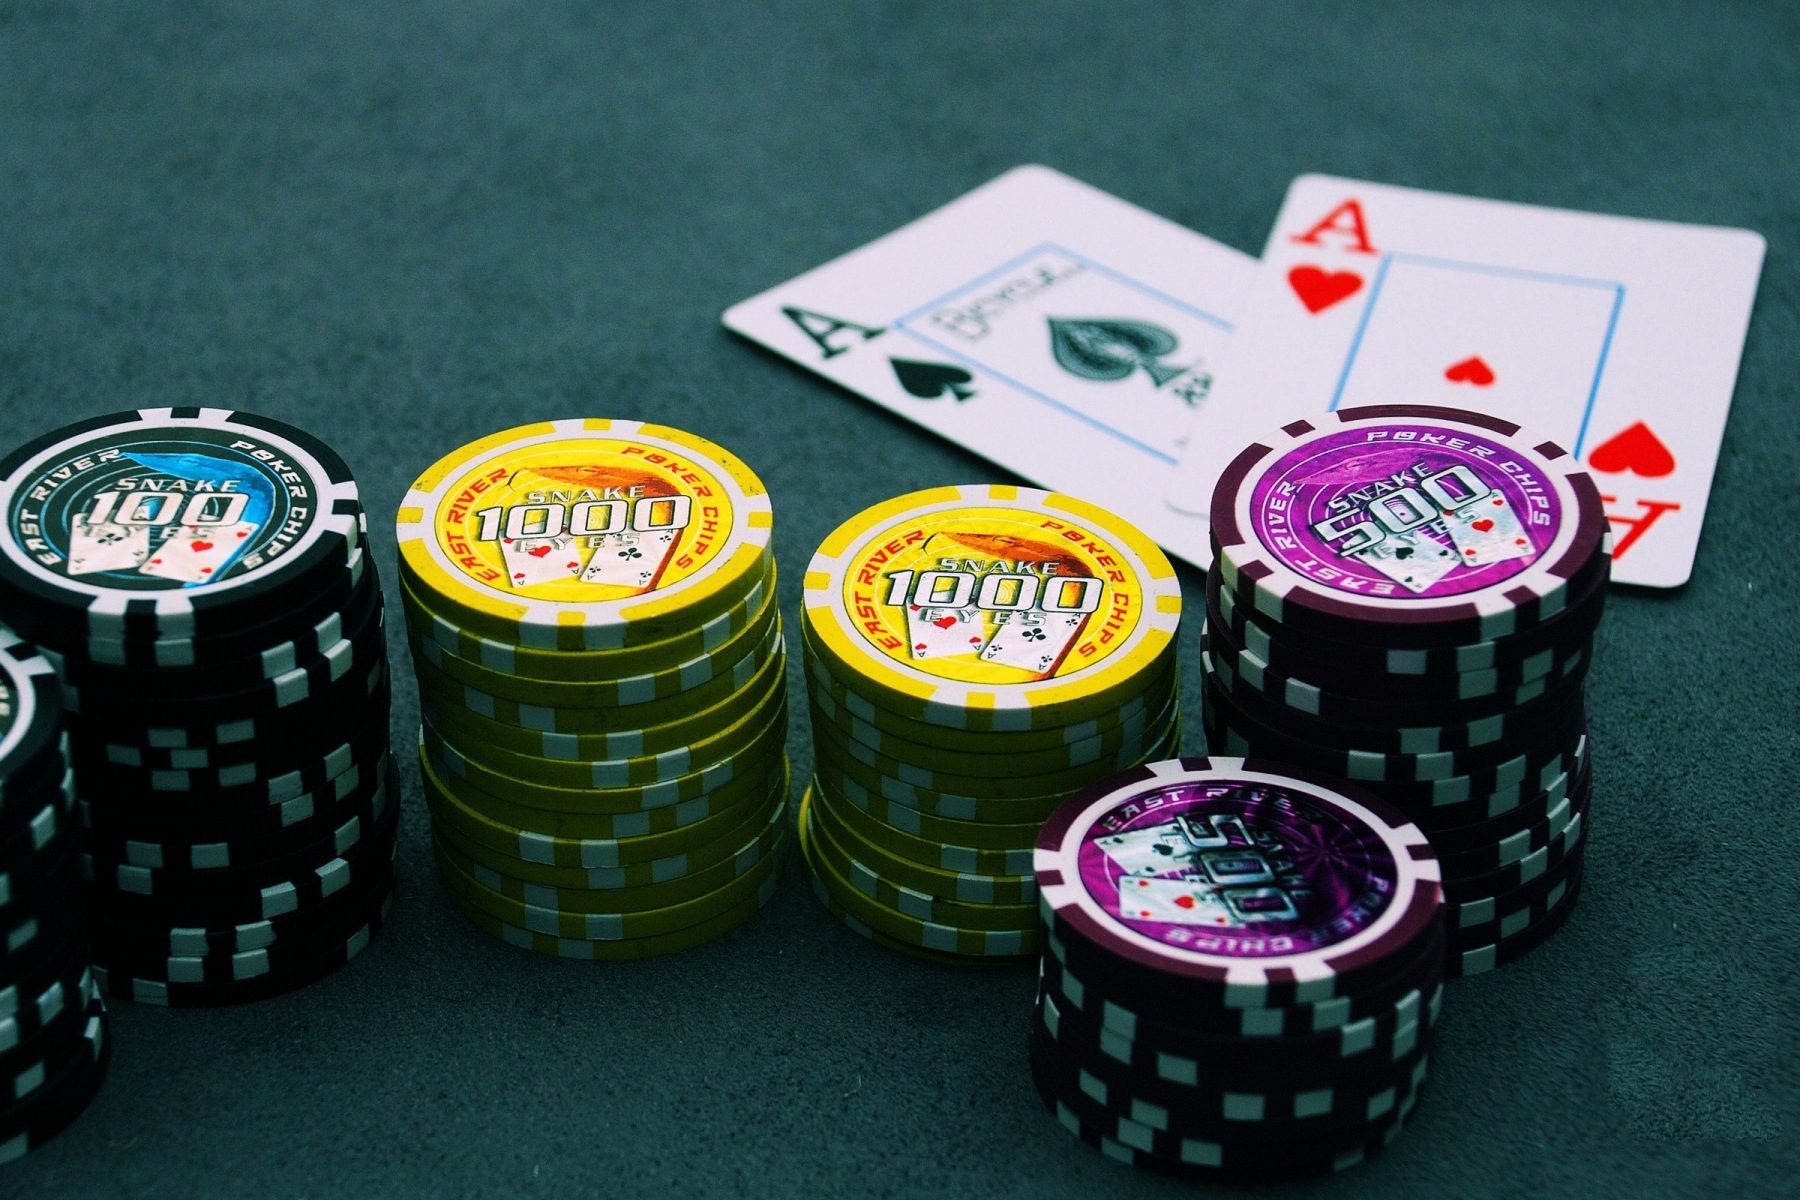 Don't Fall For This Online Gambling Scam